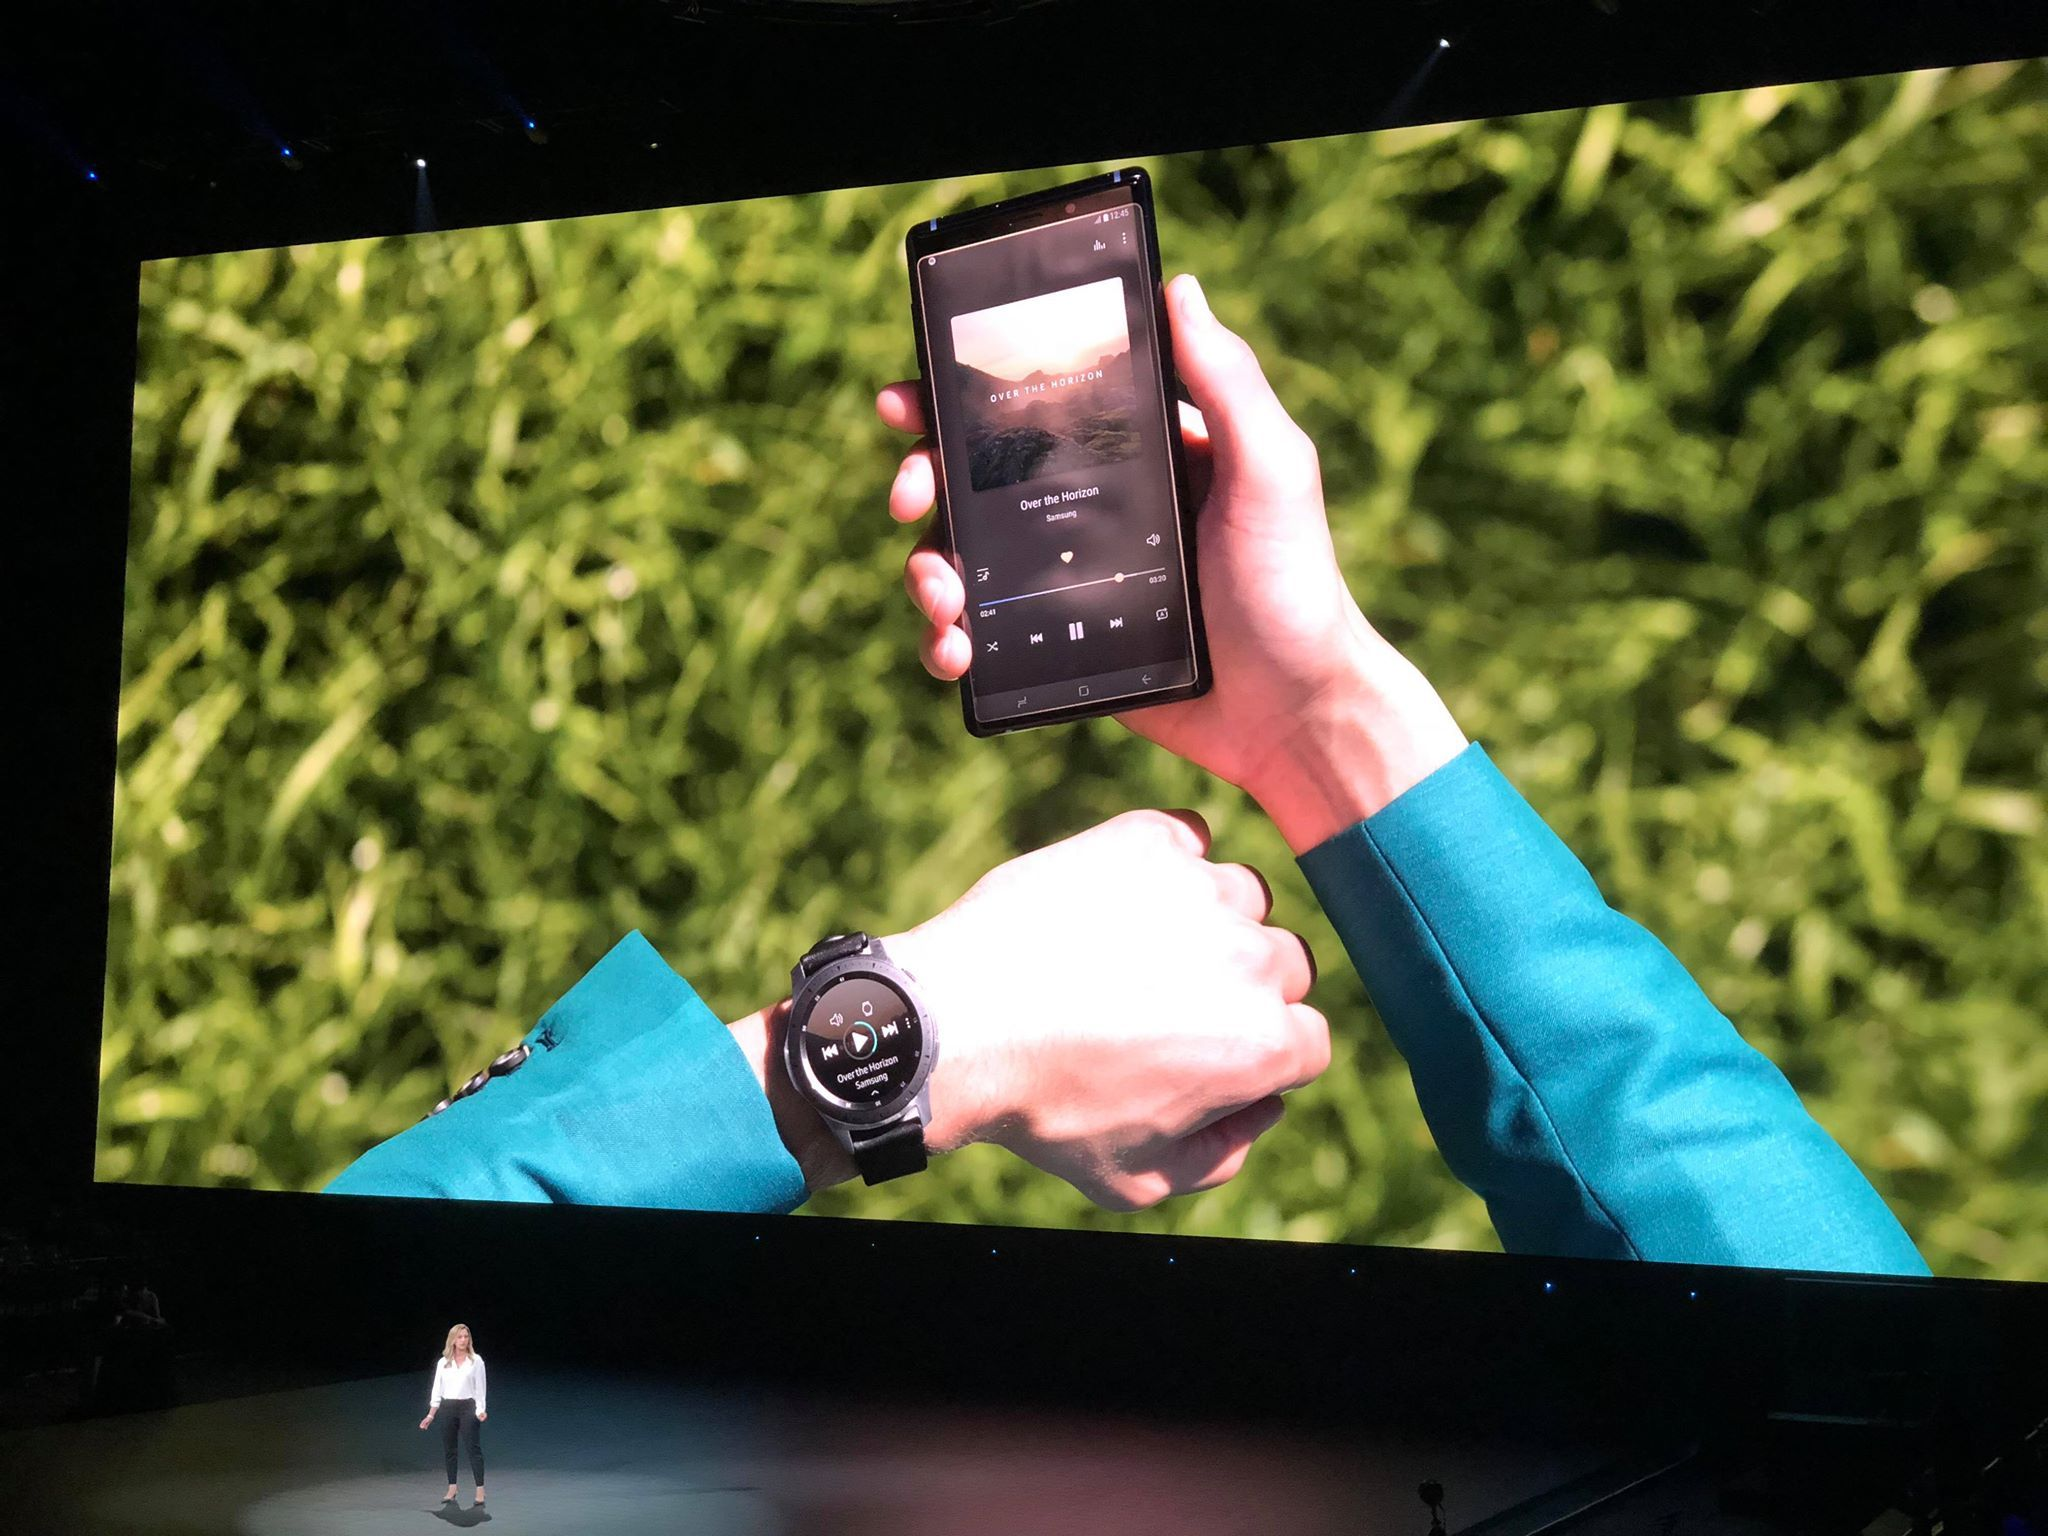 Samsung Galaxy Watch : la nouvelle montre connectée est officielle